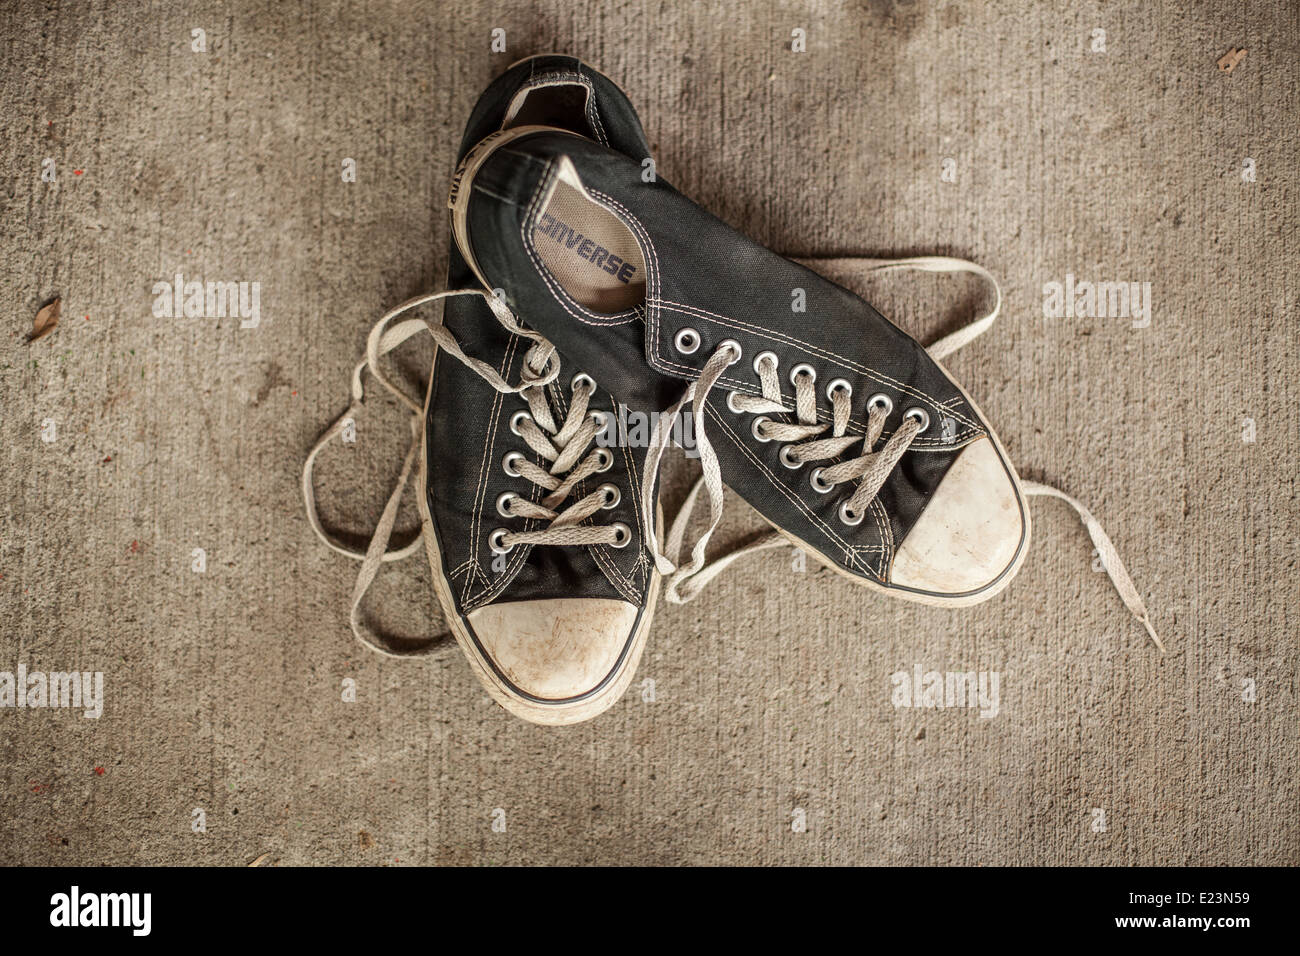 An old pair of trainers on a concrete background - Stock Image